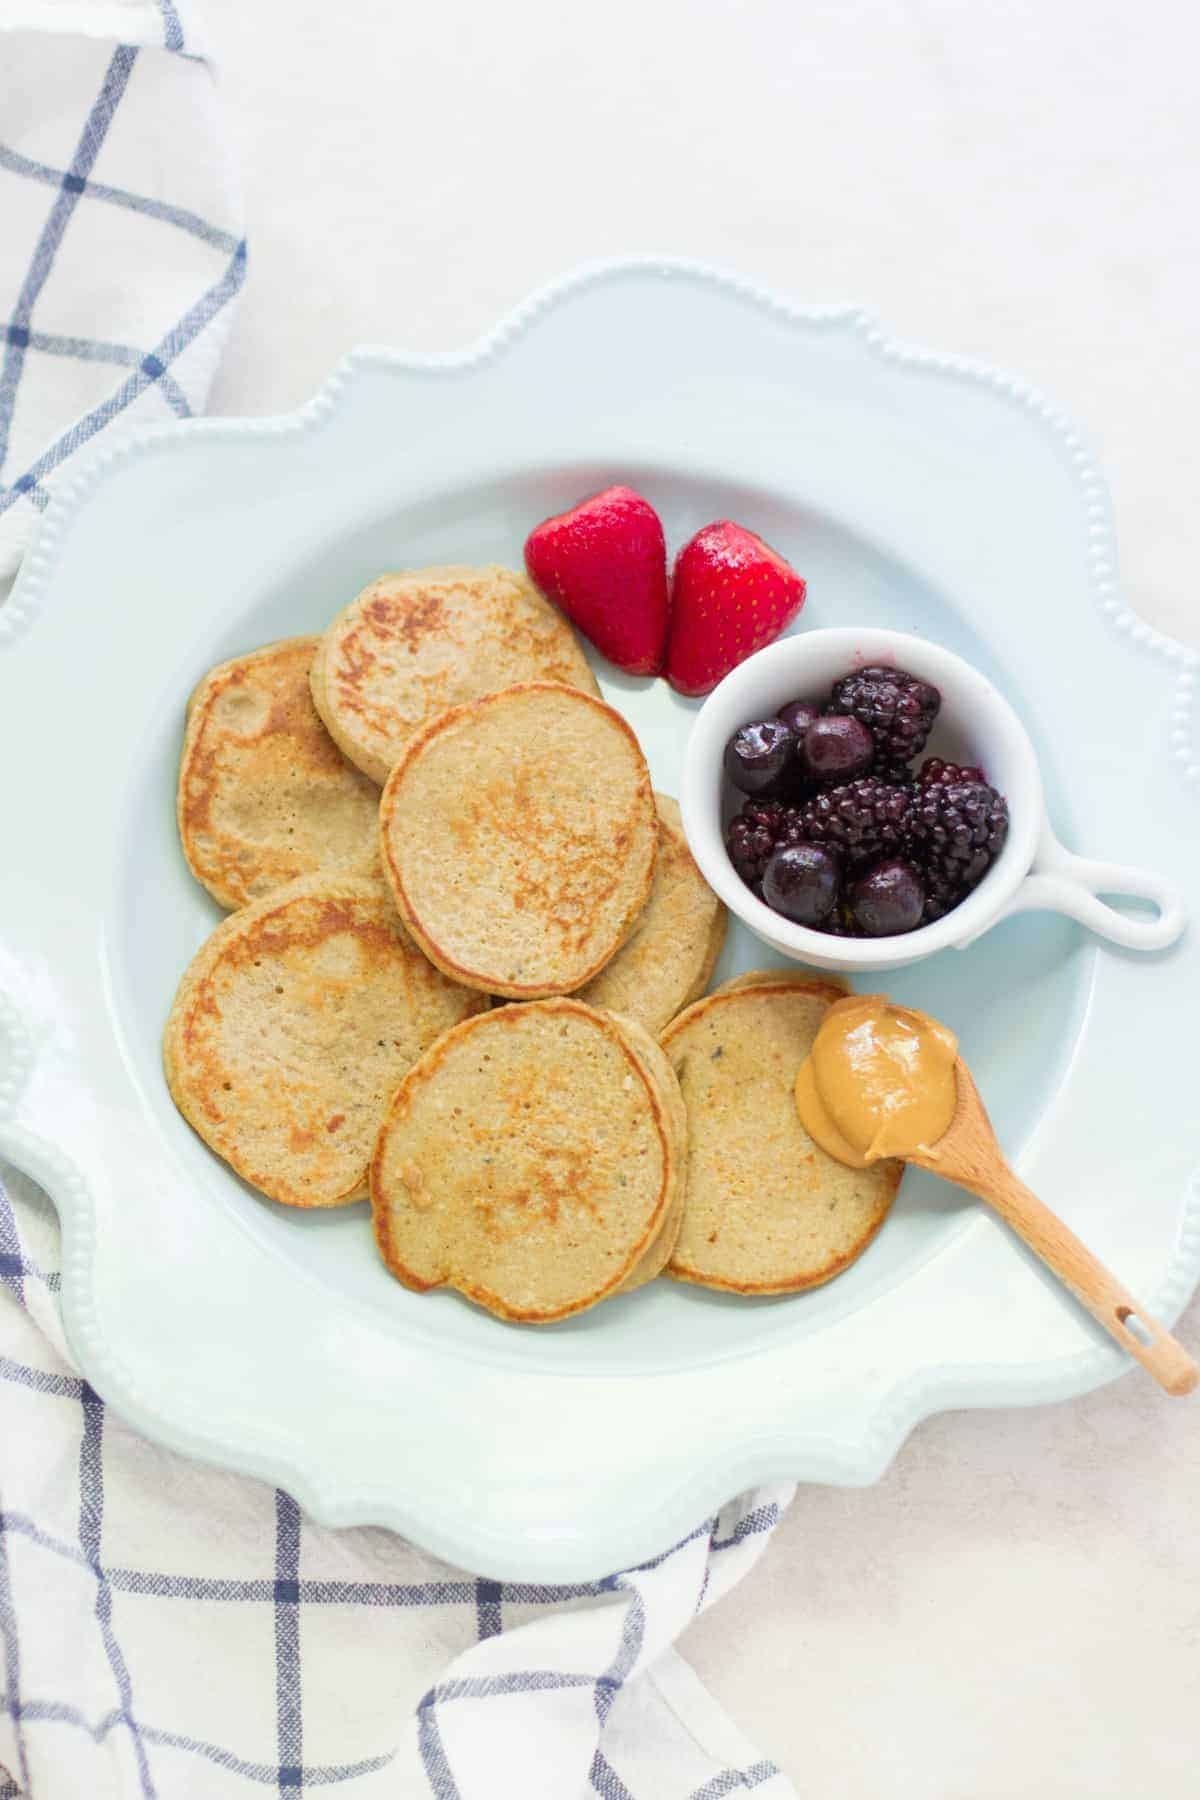 baby friendly banana protein pancakes spread out on a blue plate with berries and peanut butter